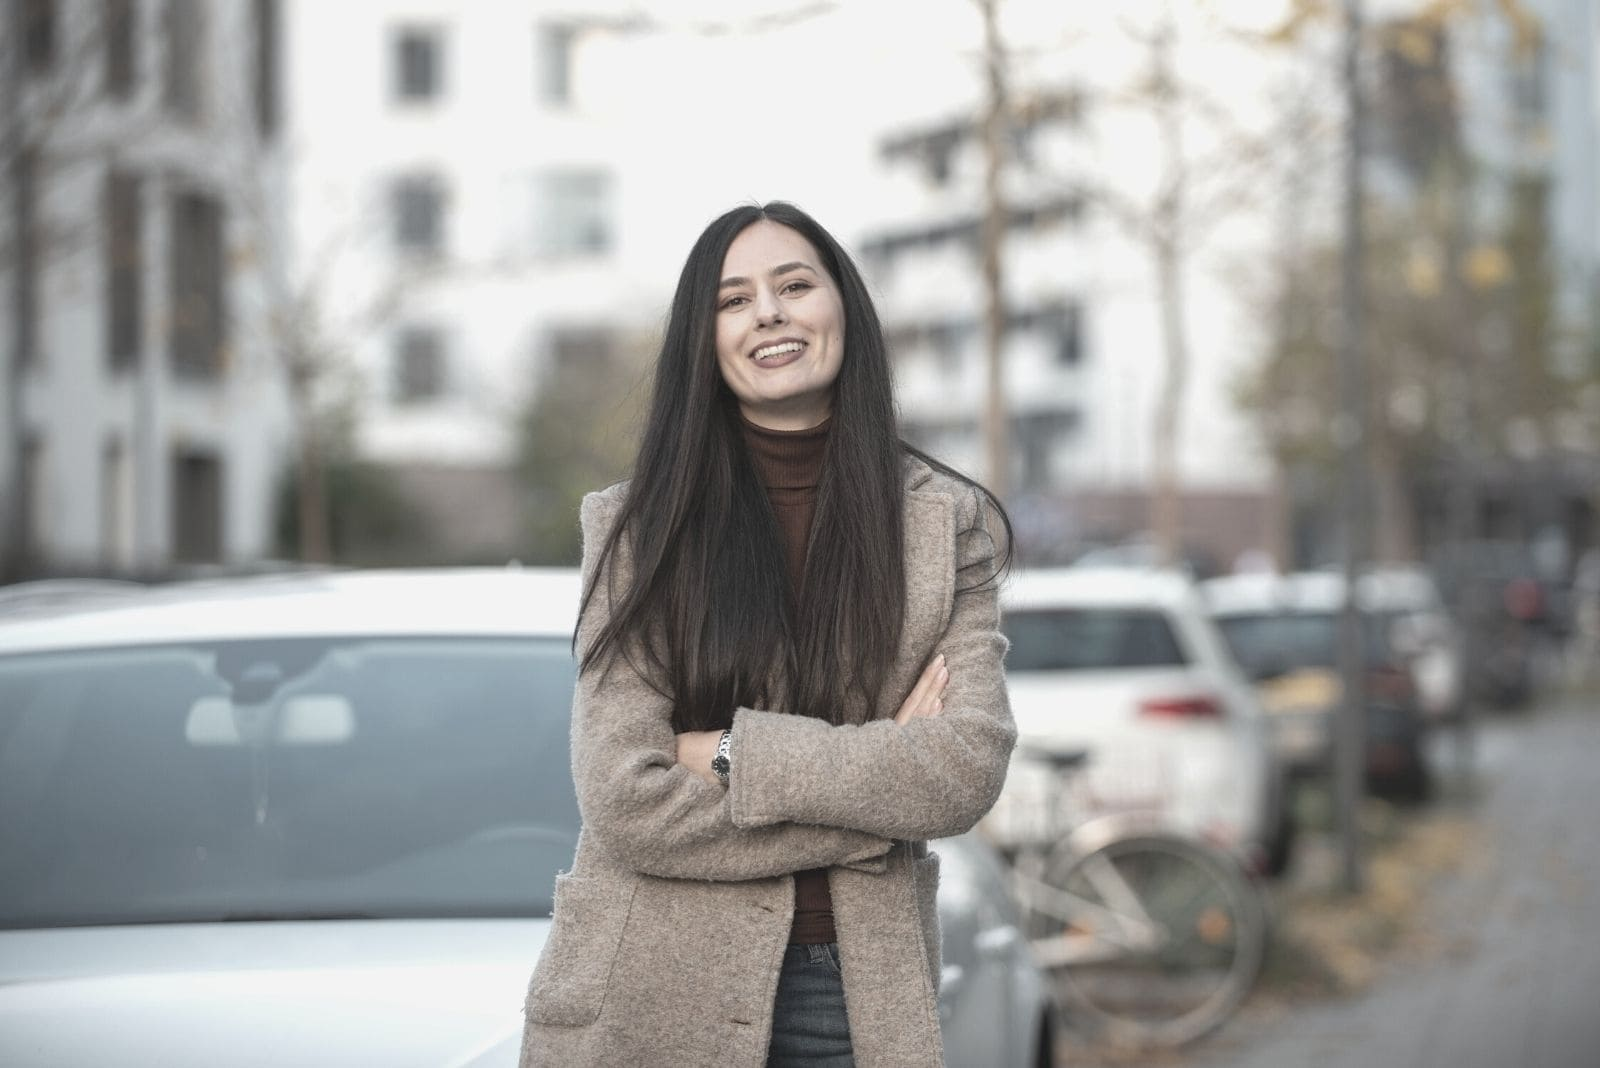 smiling woman outdoor standing in front of the car parked on the side of the street